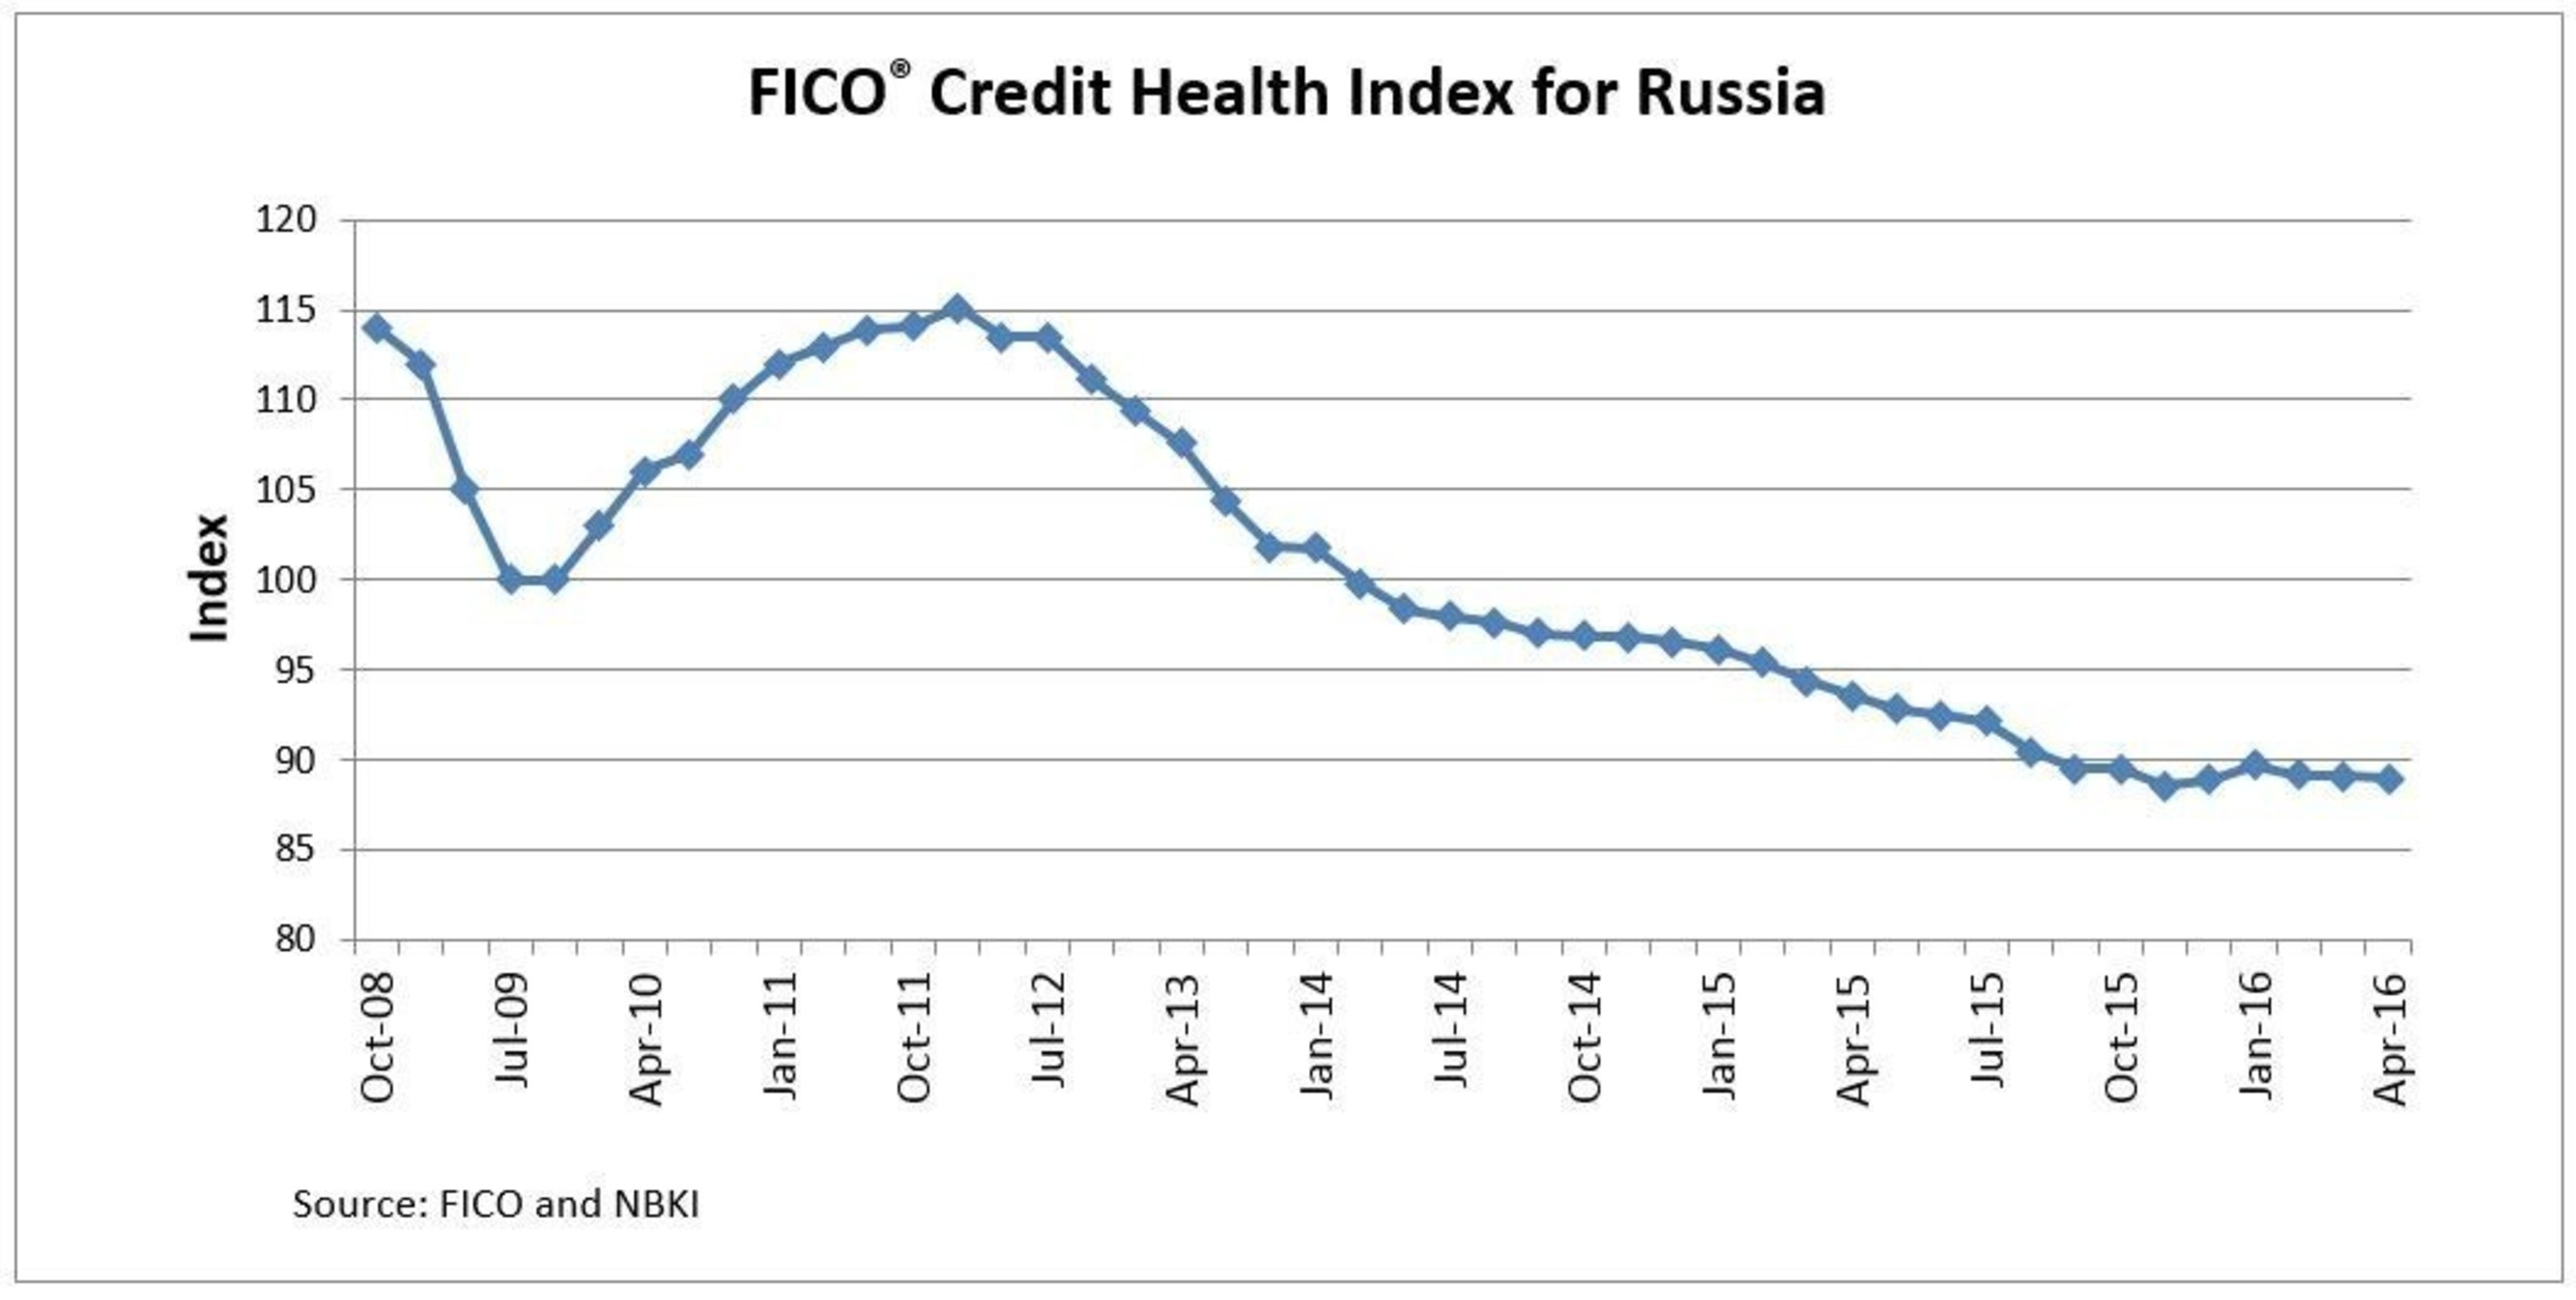 Russians' Credit Performance Remains Steady at Historic Low, According to Data from FICO and NBKI